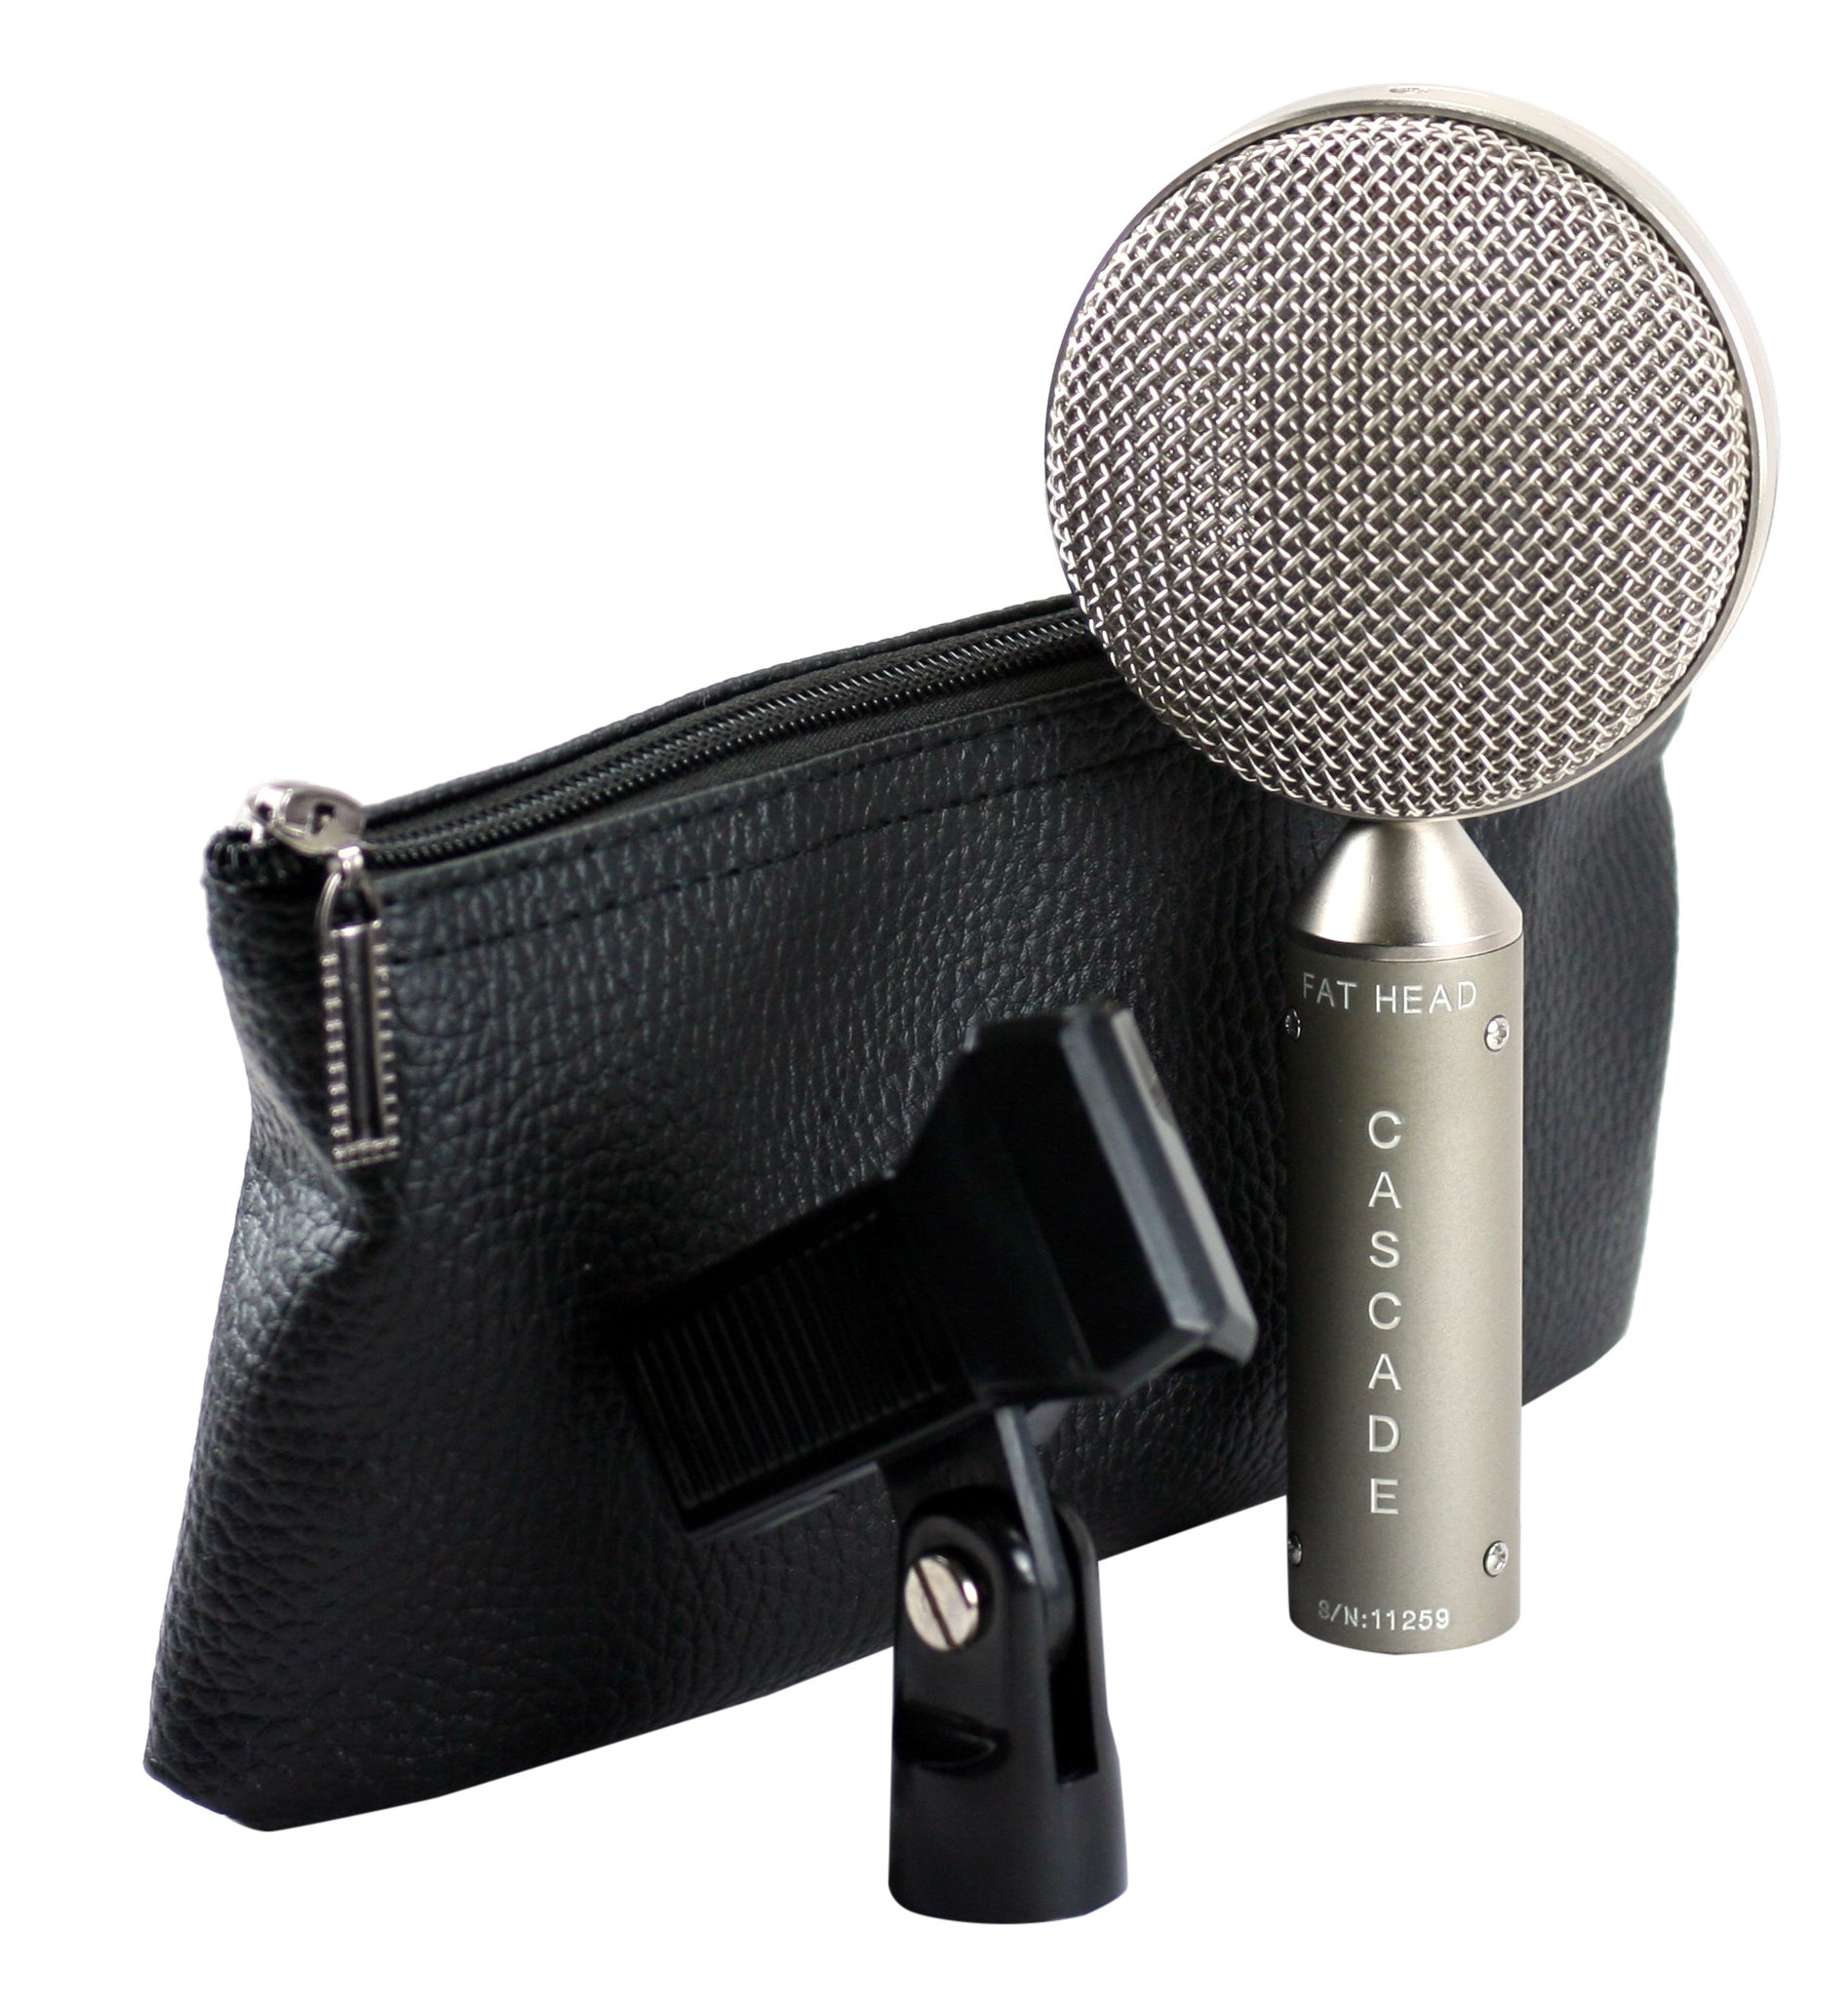 Cascade Microphones FAT HEAD BE Grey Body/Anodized Silver Grill by Cascade Microphones